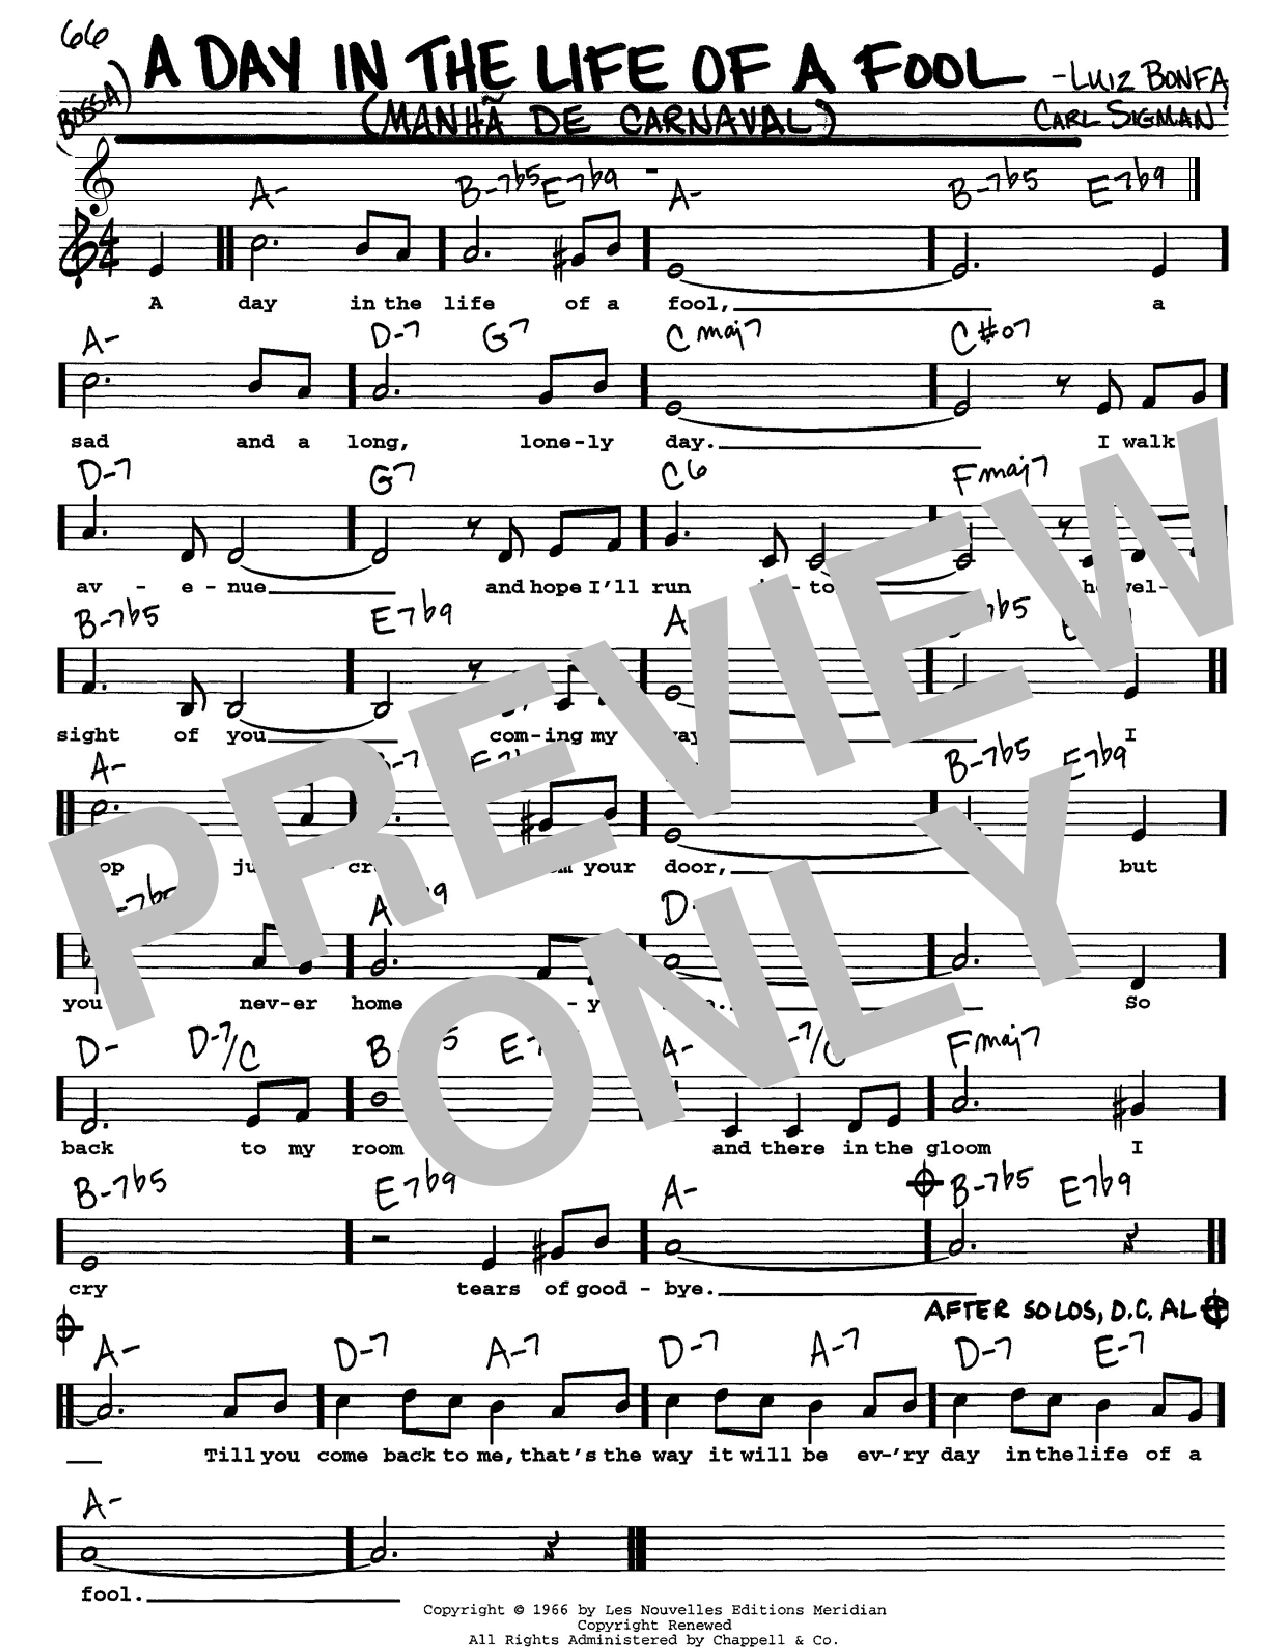 Frank Sinatra A Day In The Life Of A Fool sheet music notes and chords. Download Printable PDF.